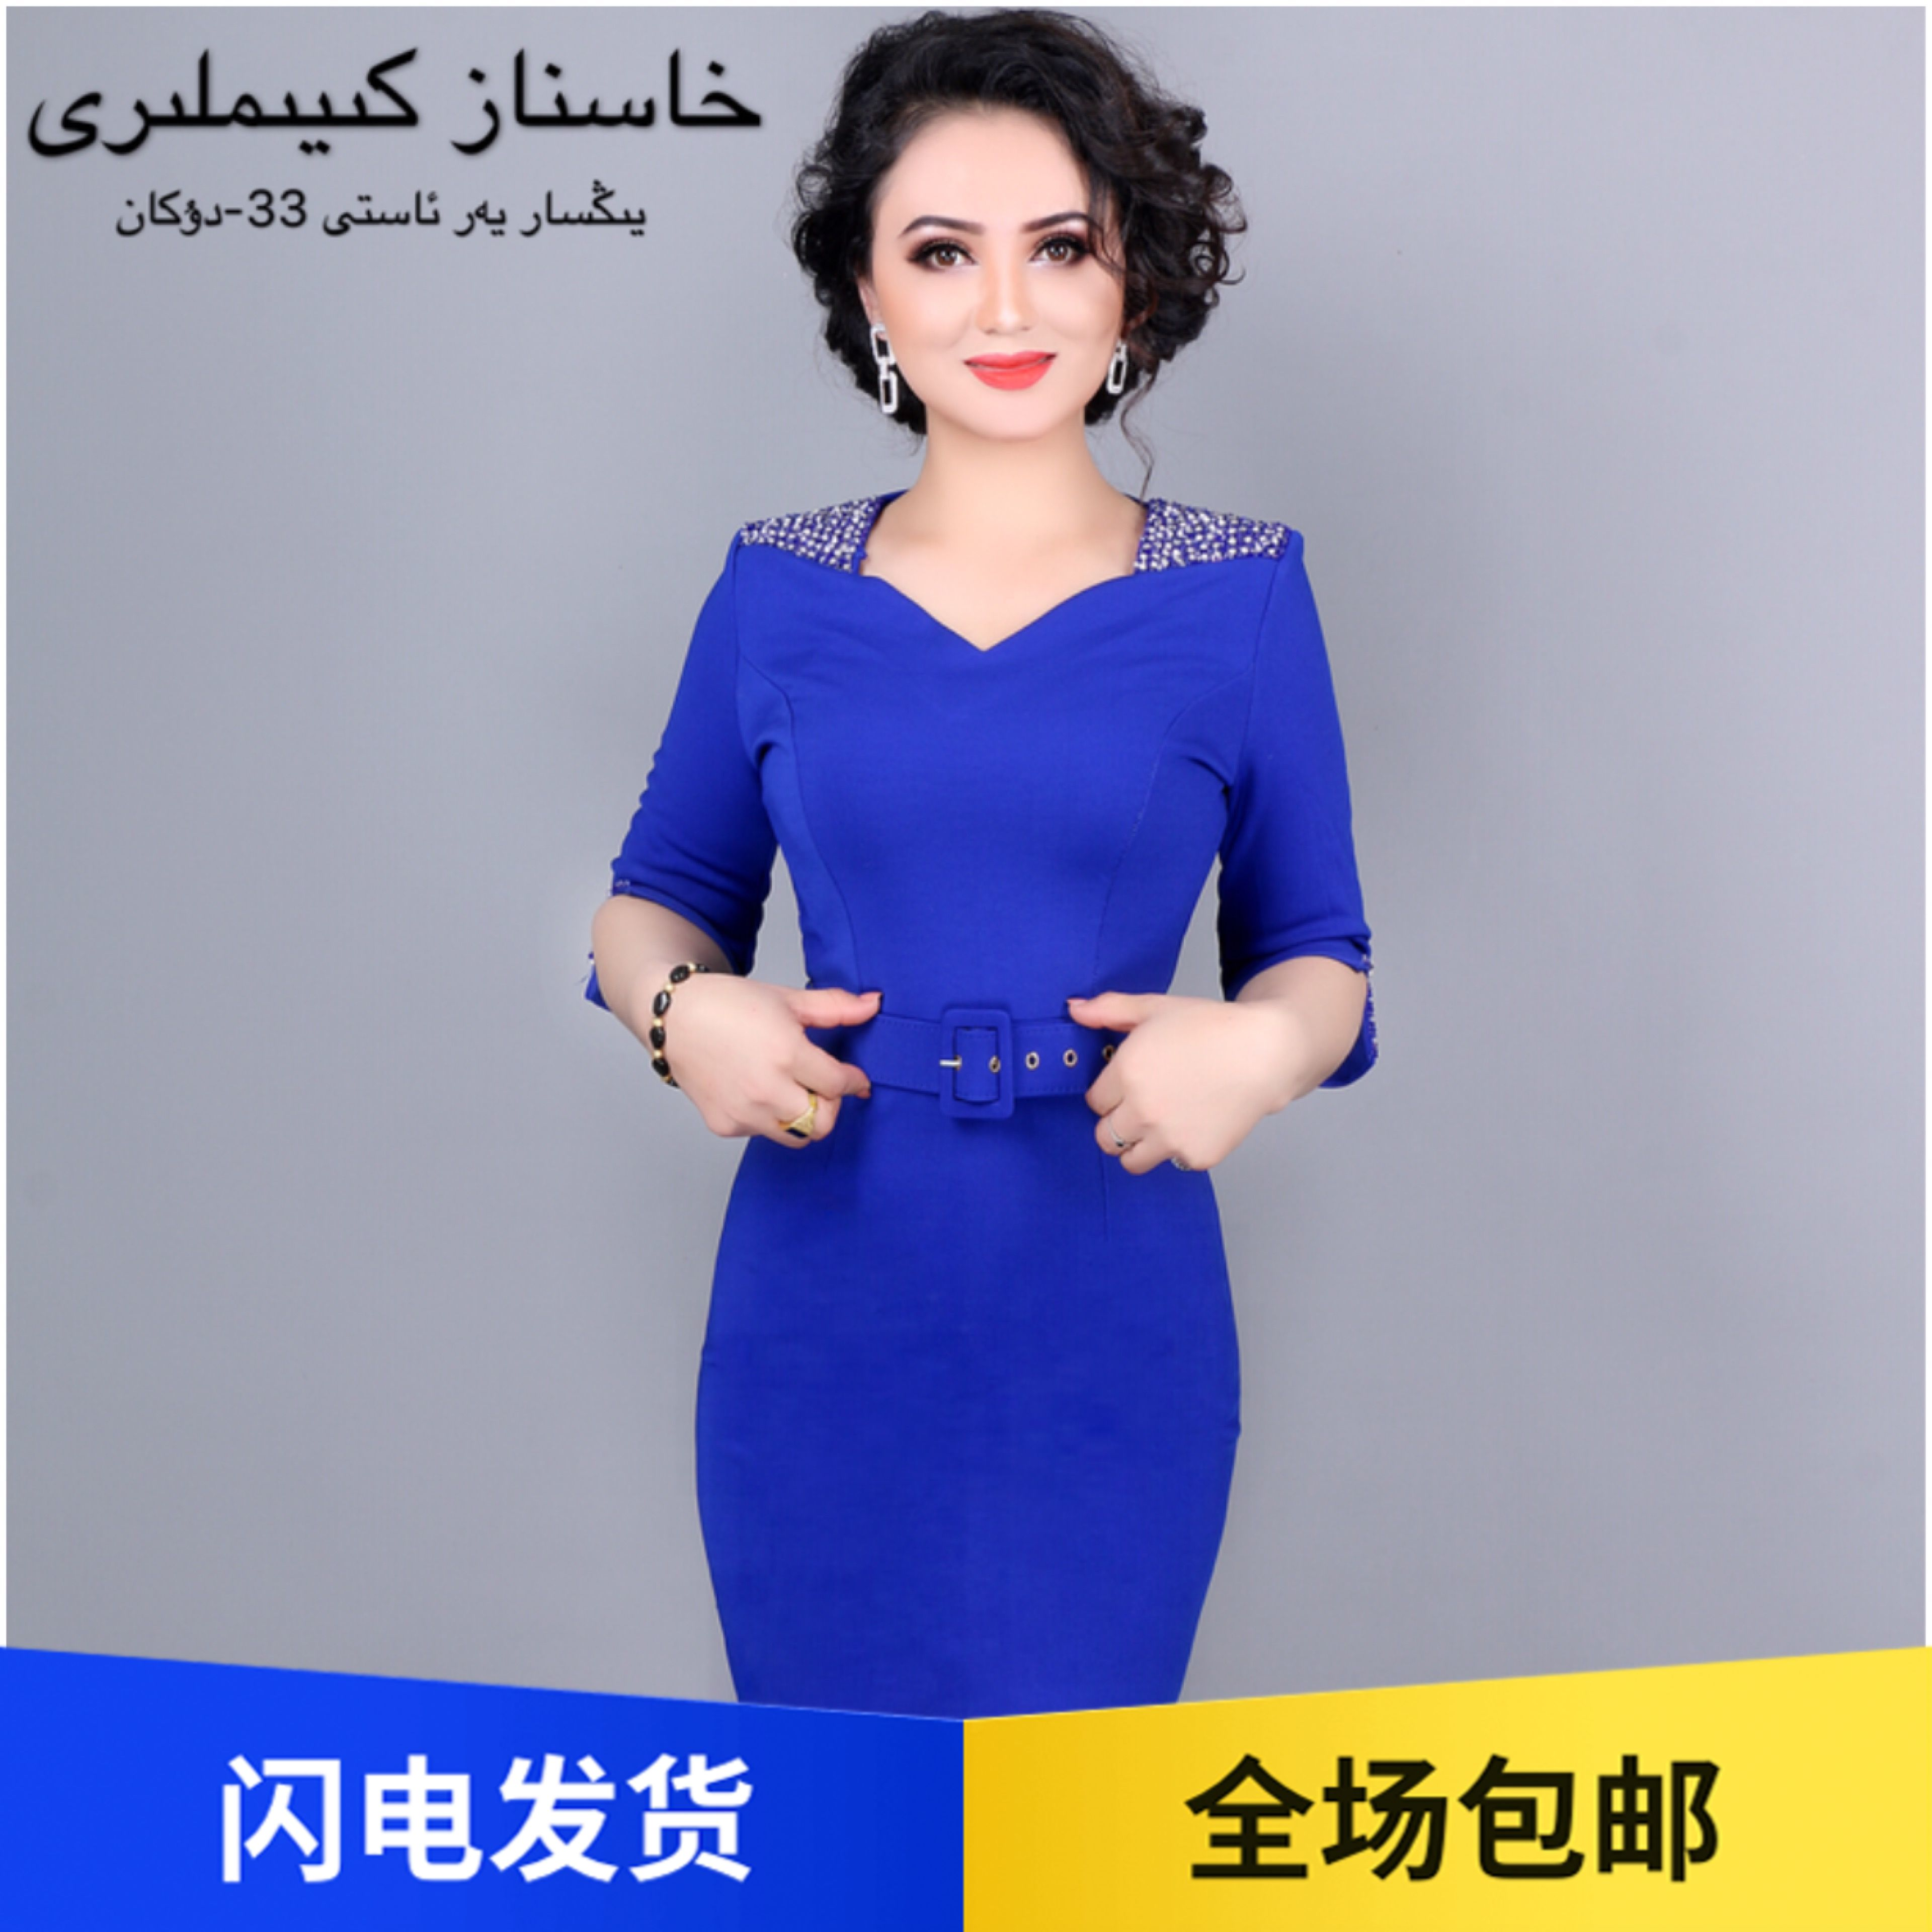 Haisinazi mid skirt one piece slim fit spring and summer new mid long sleeve fashion womens dress package